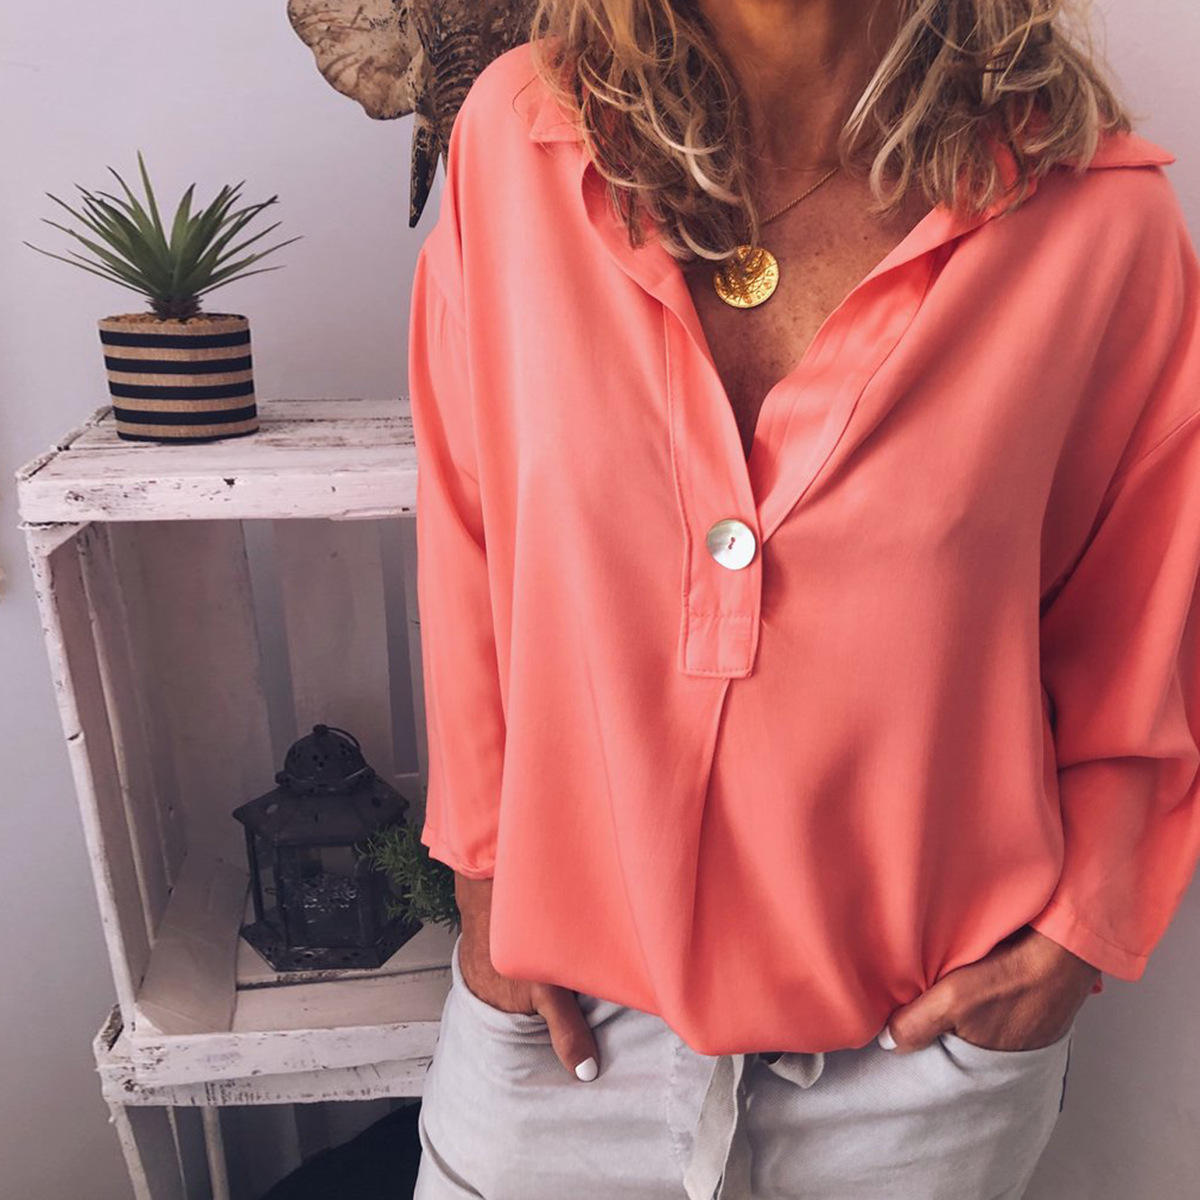 LISALA Casual Loose Women Shirts 2019 Autumn New Fashion Blouse Long Sleeve v neck White Tops Streetwear in Blouses amp Shirts from Women 39 s Clothing